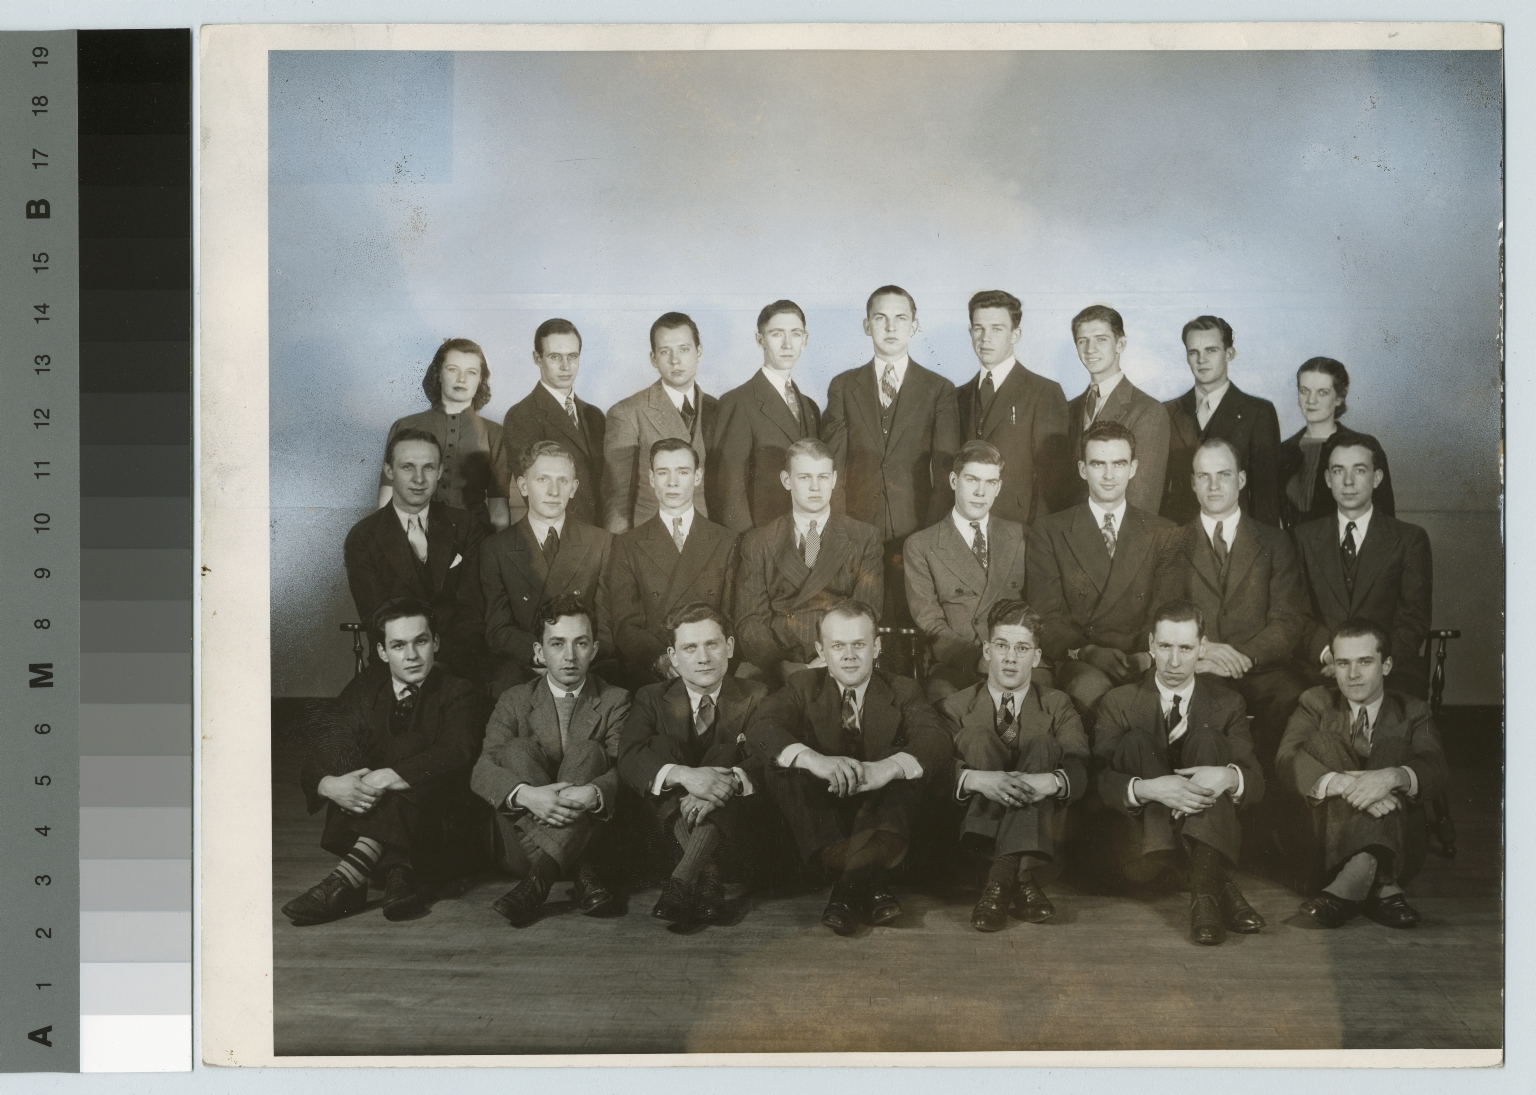 Yearbook group portrait, Department of Photographic Technology, Rochester Institute of Technology